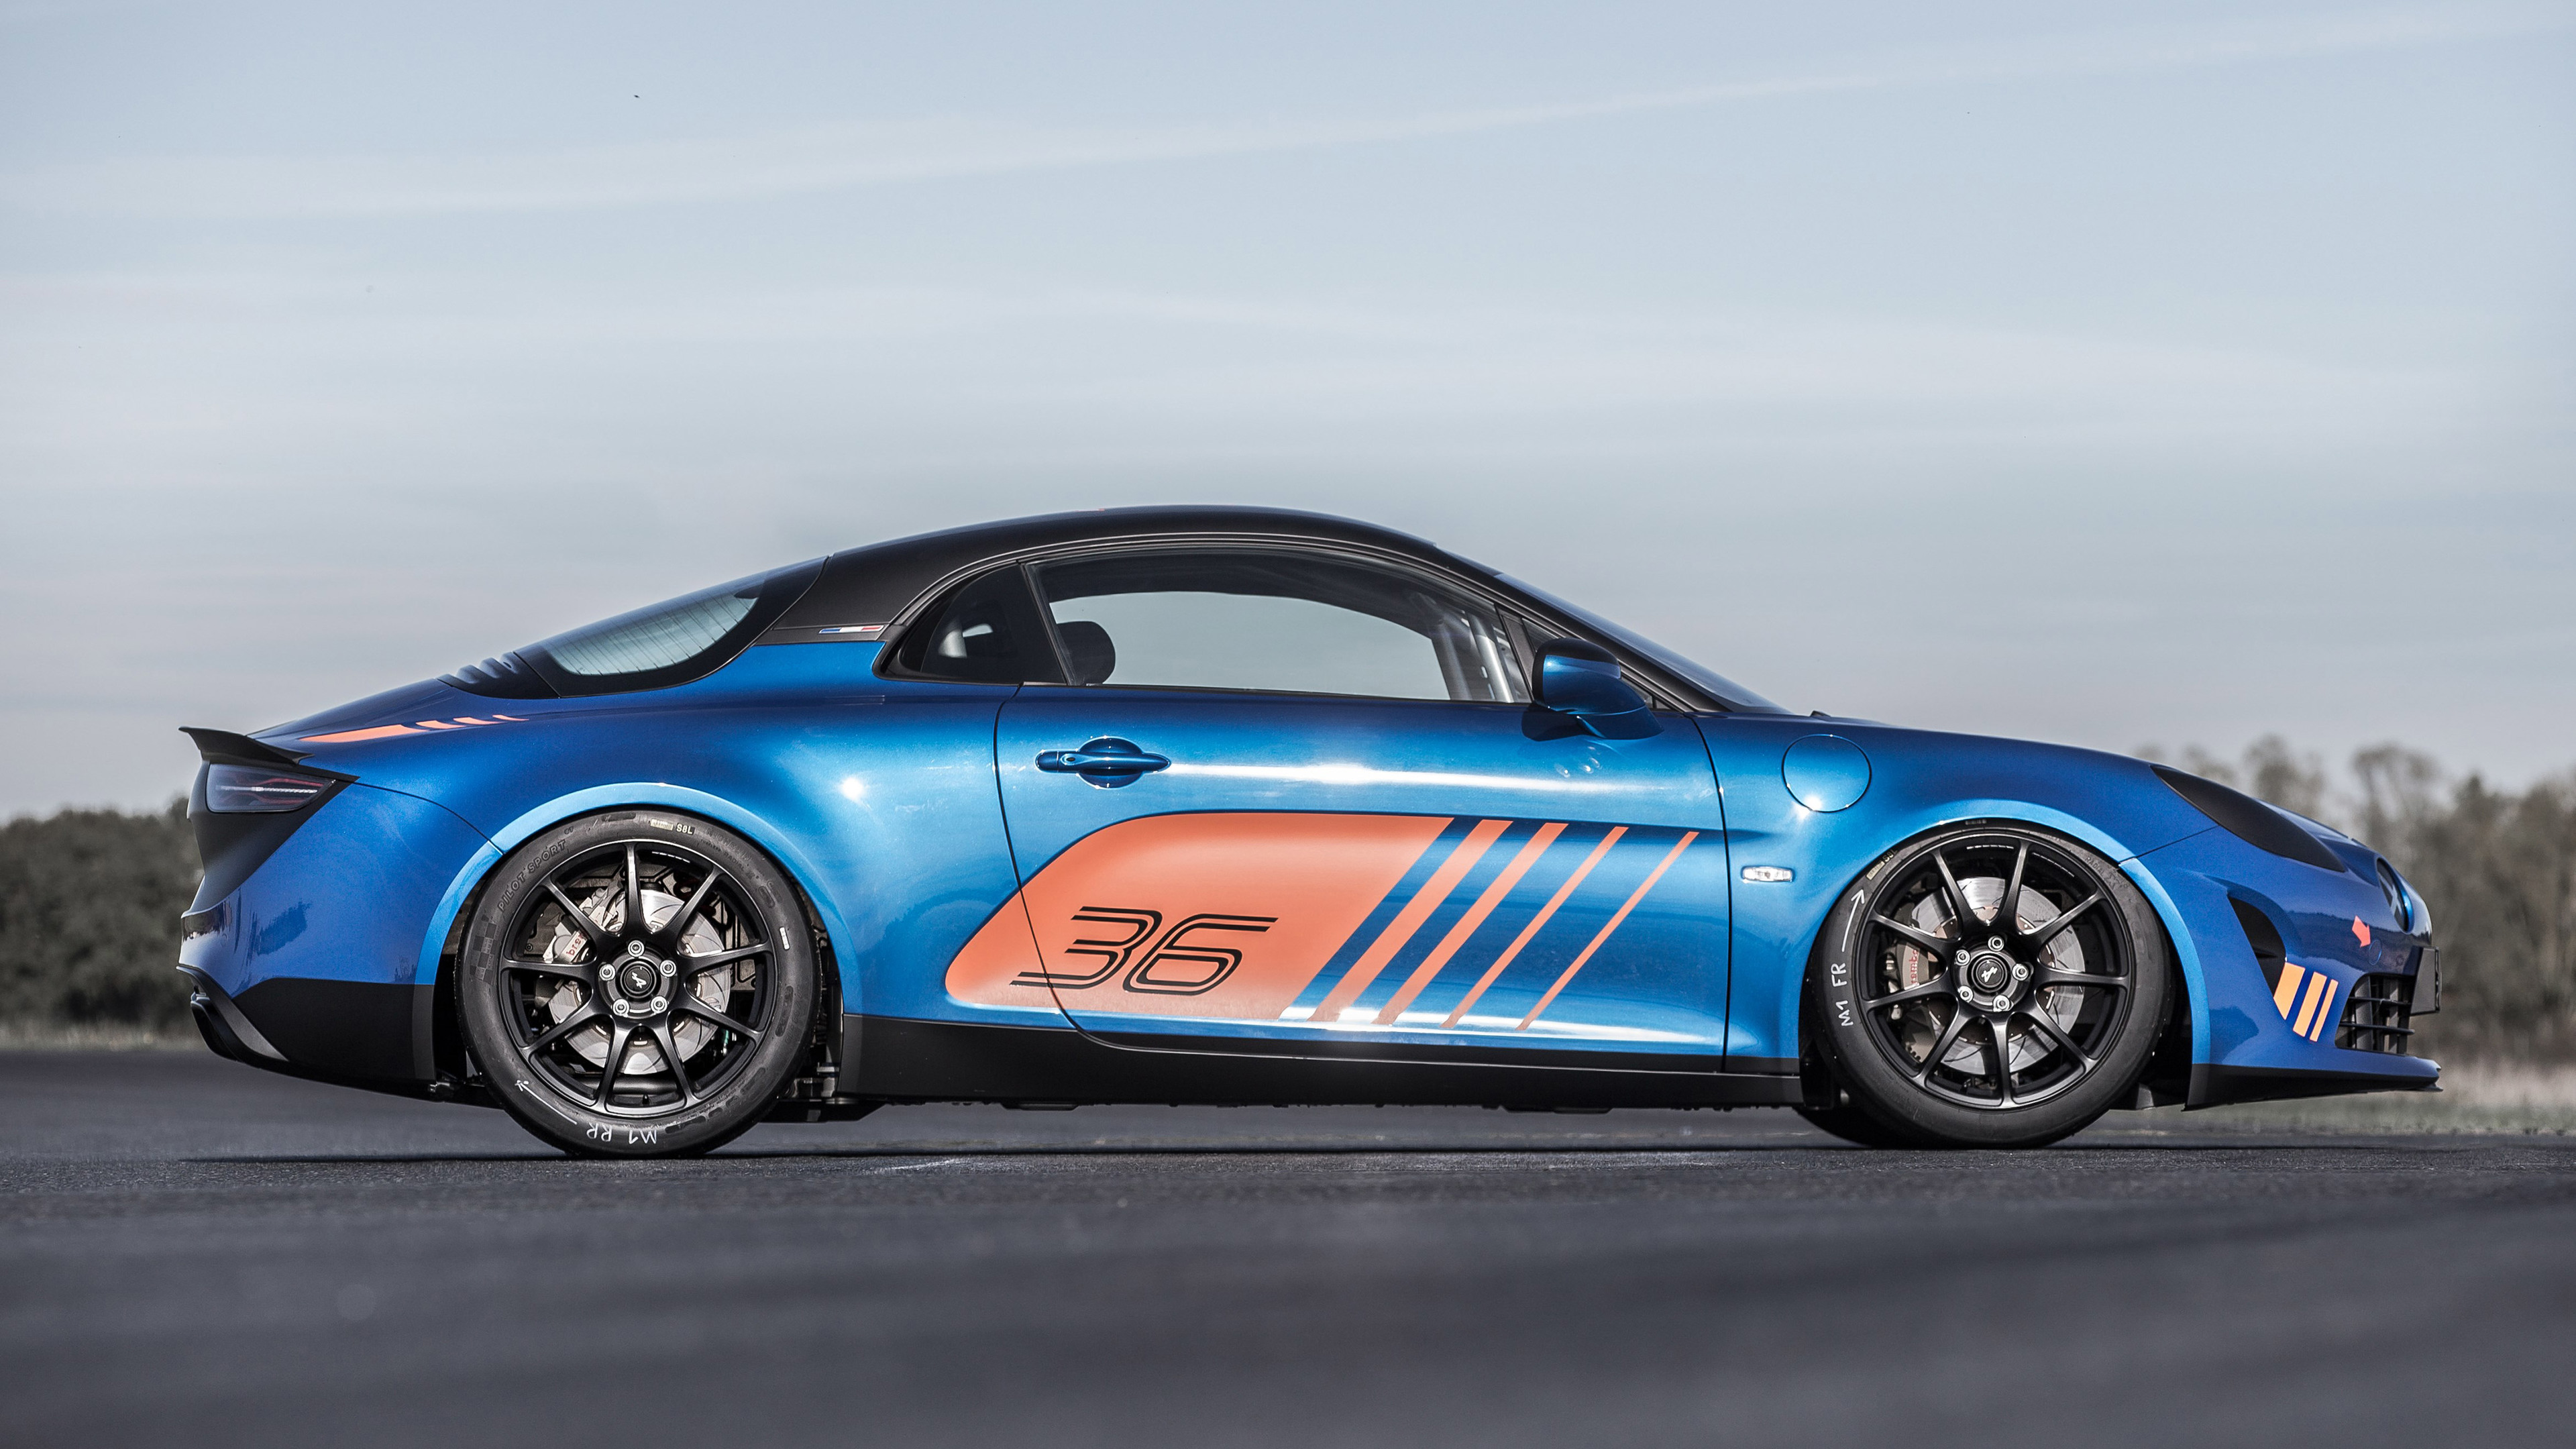 alpine a110 cup 2017 1539107406 - Alpine A110 Cup 2017 - hd-wallpapers, cars wallpapers, alpine wallpapers, 4k-wallpapers, 2017 cars wallpapers